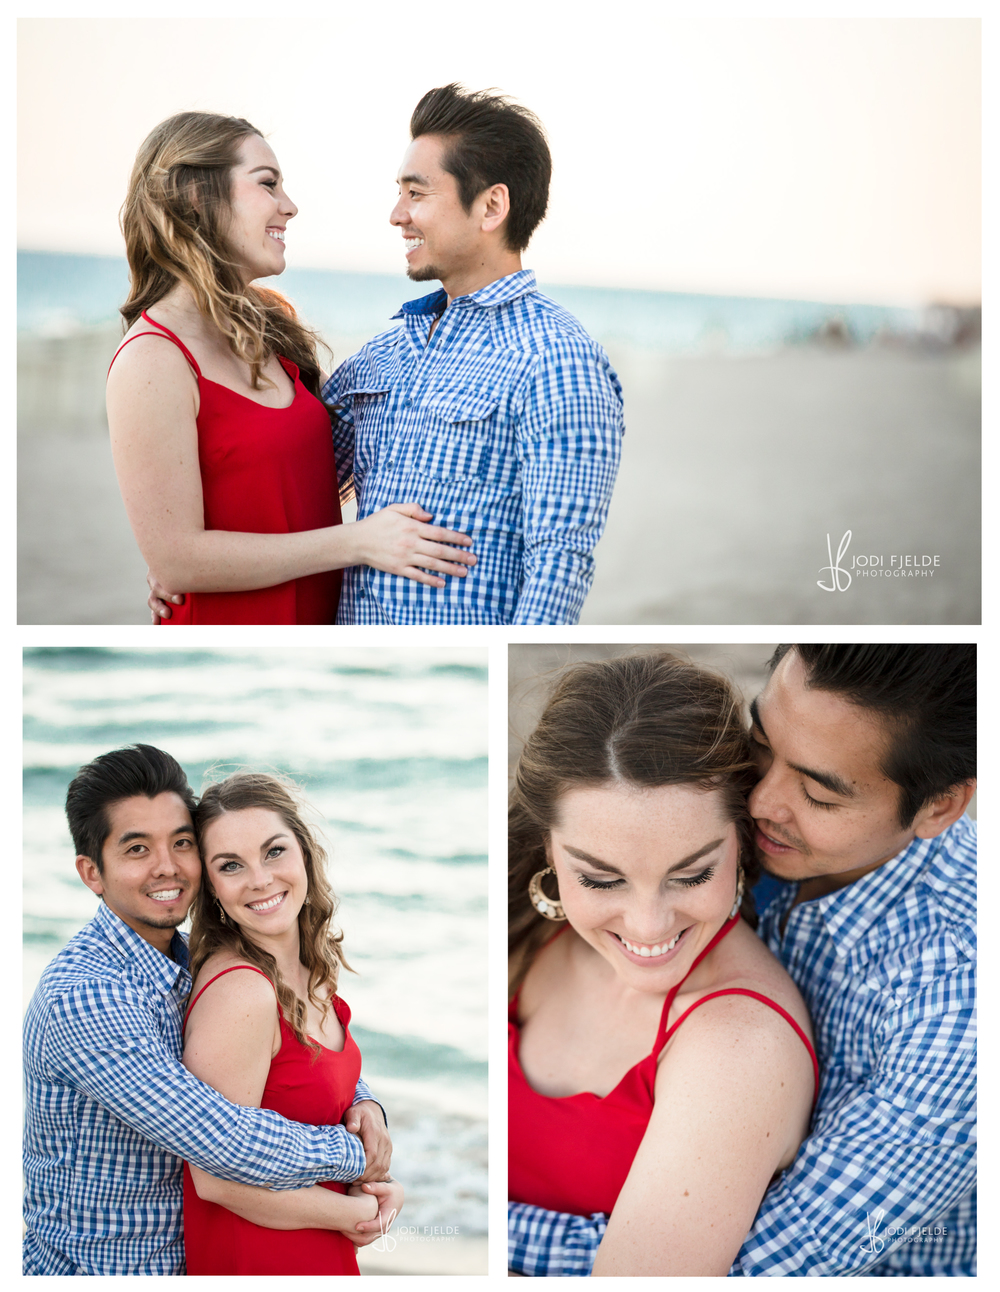 Fort_Lauderdale_engagement_session_Kelsey_Ken_Jodi_Fjelde_Photography_5.jpg